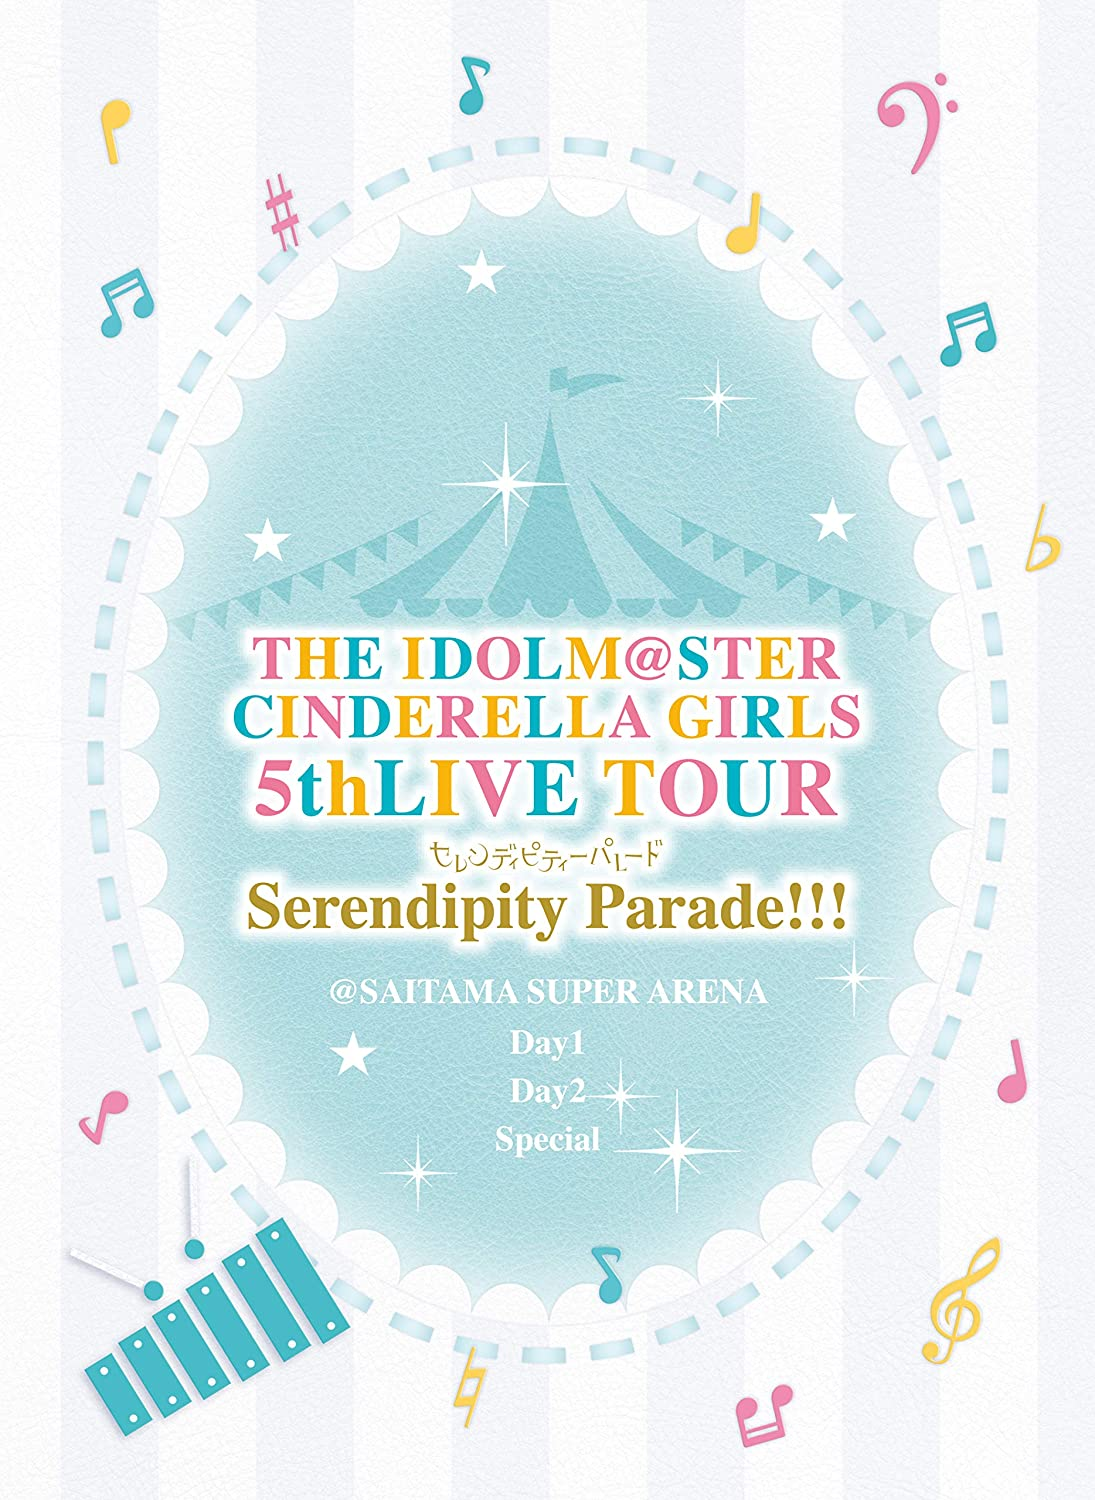 偶像大师 灰姑娘女孩/THE IDOLM@STER CINDERELLA GIRLS 5thLIVE TOUR Serendipity Parade!!!@SSA [BDRip 1080p HEVC-10bit FLAC]【75.5GB】